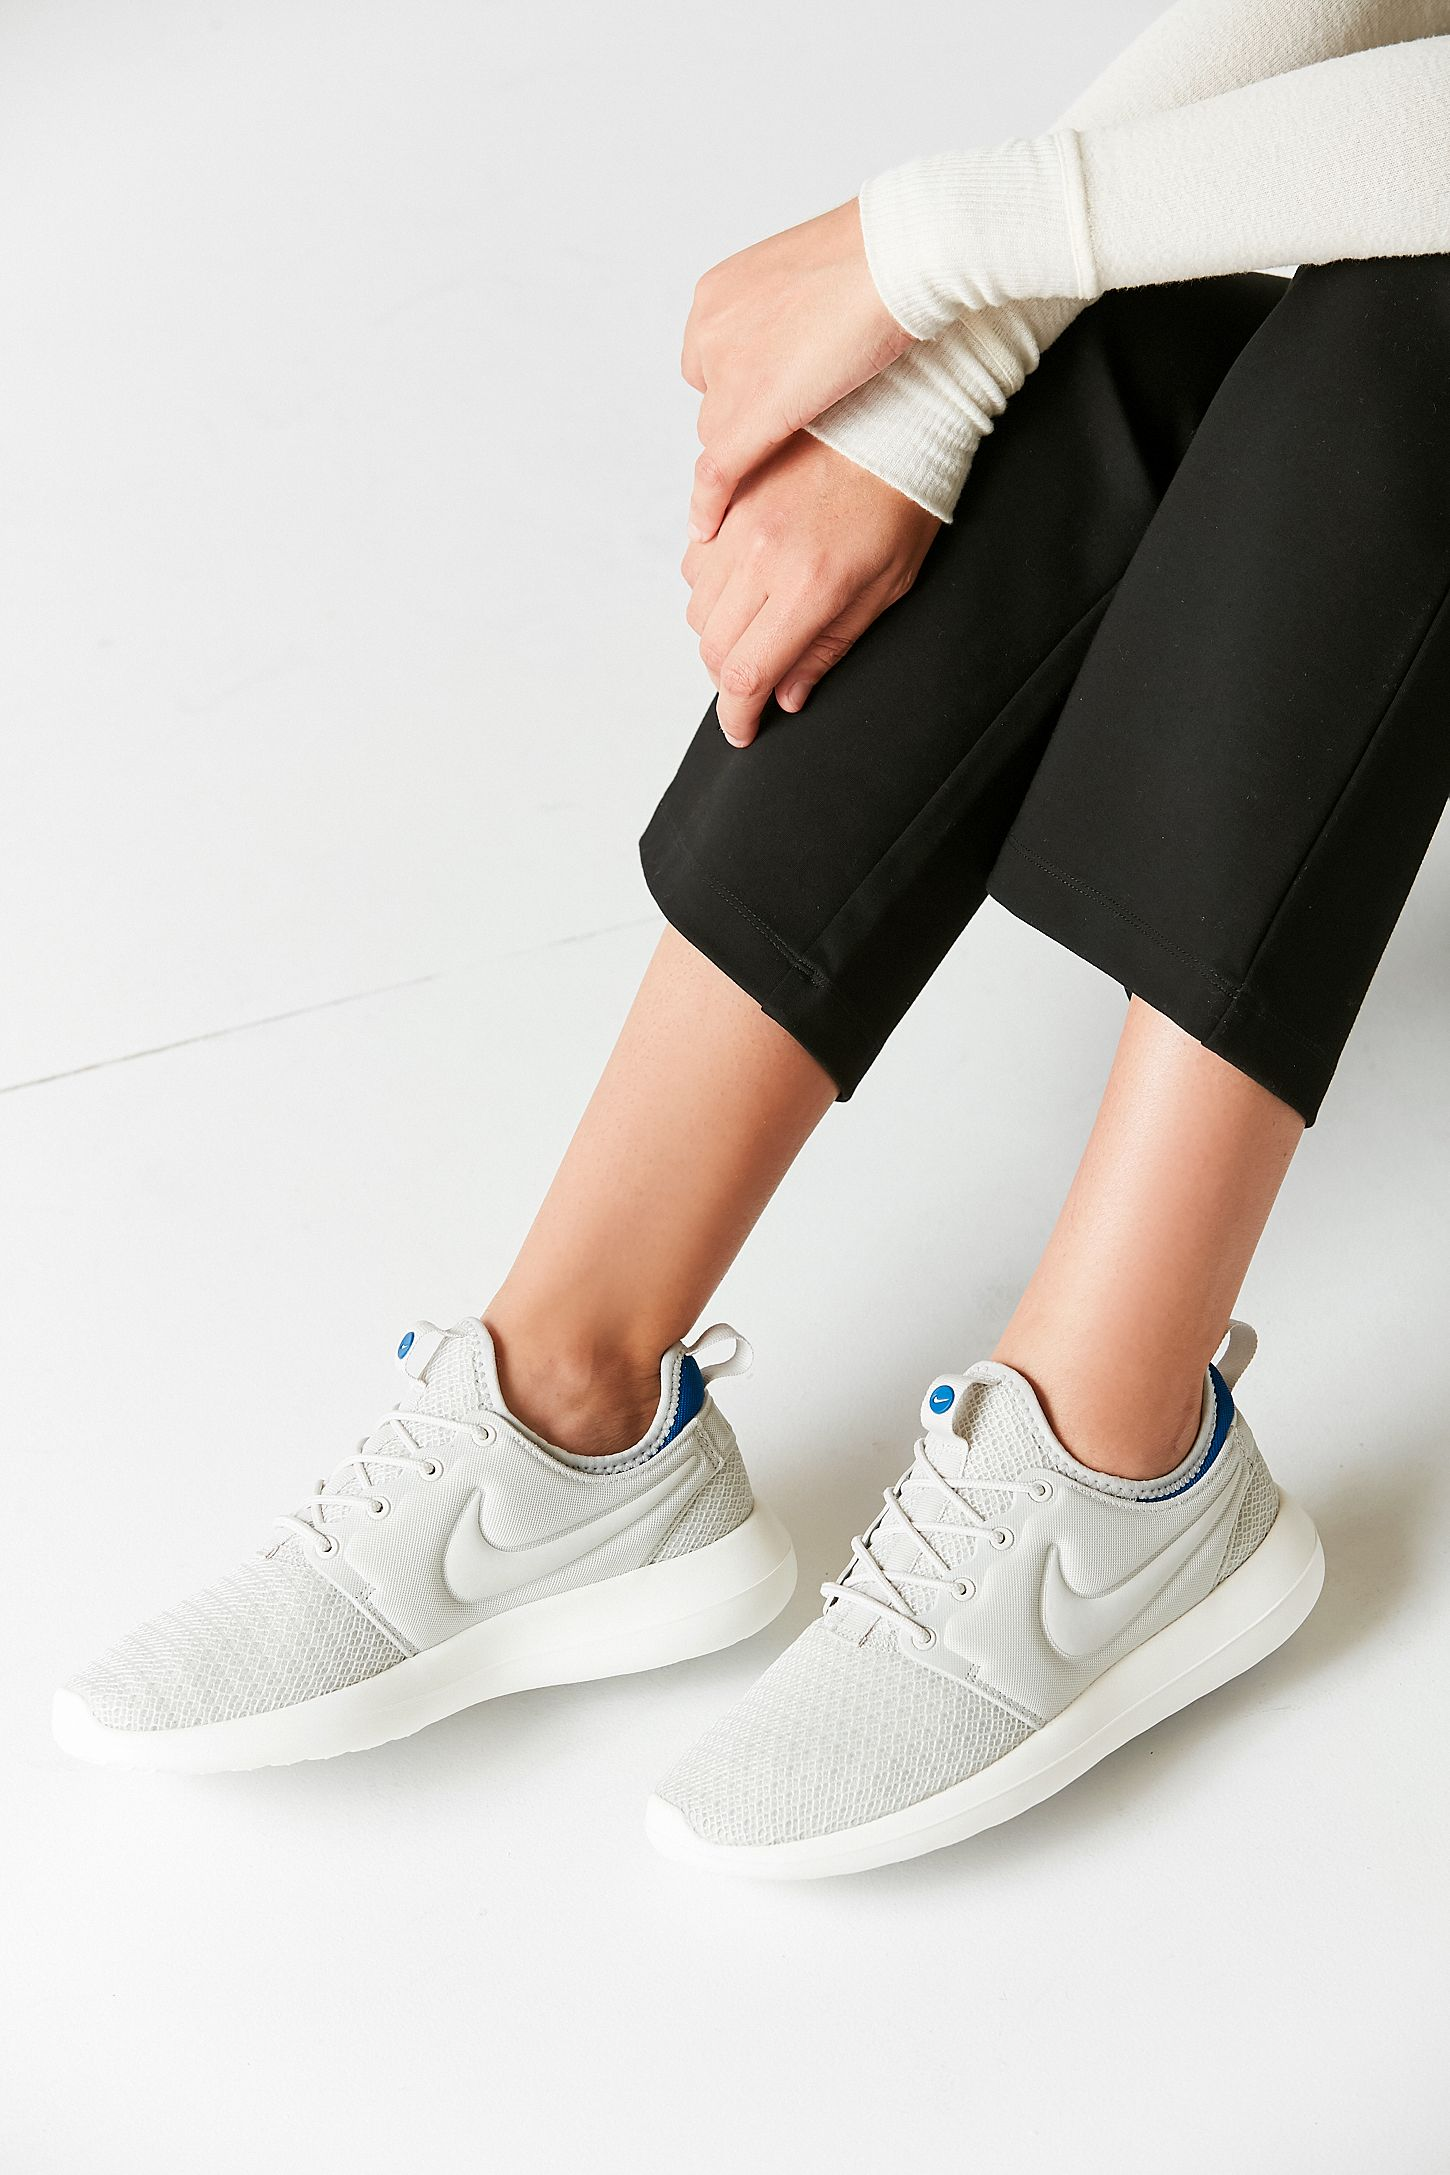 los angeles d708e 14569 Nike Roshe Two Sneaker   Urban Outfitters